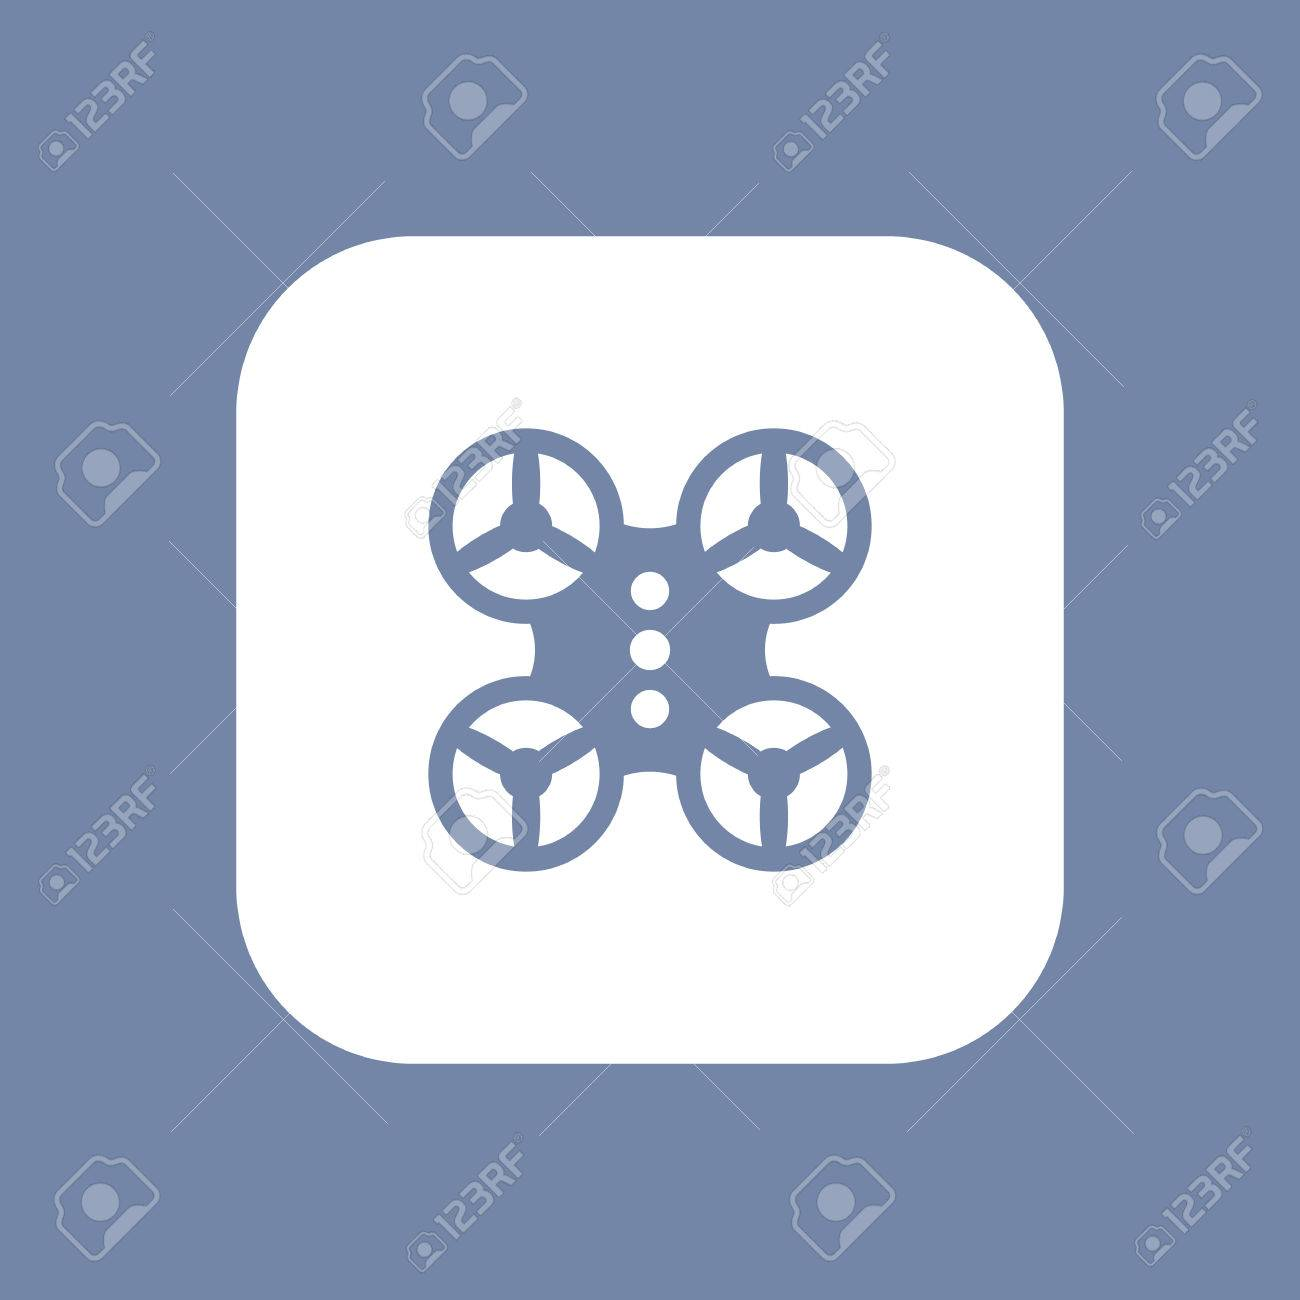 Quadrocopter Drone Icon Sign Delivery Logo Element Uav